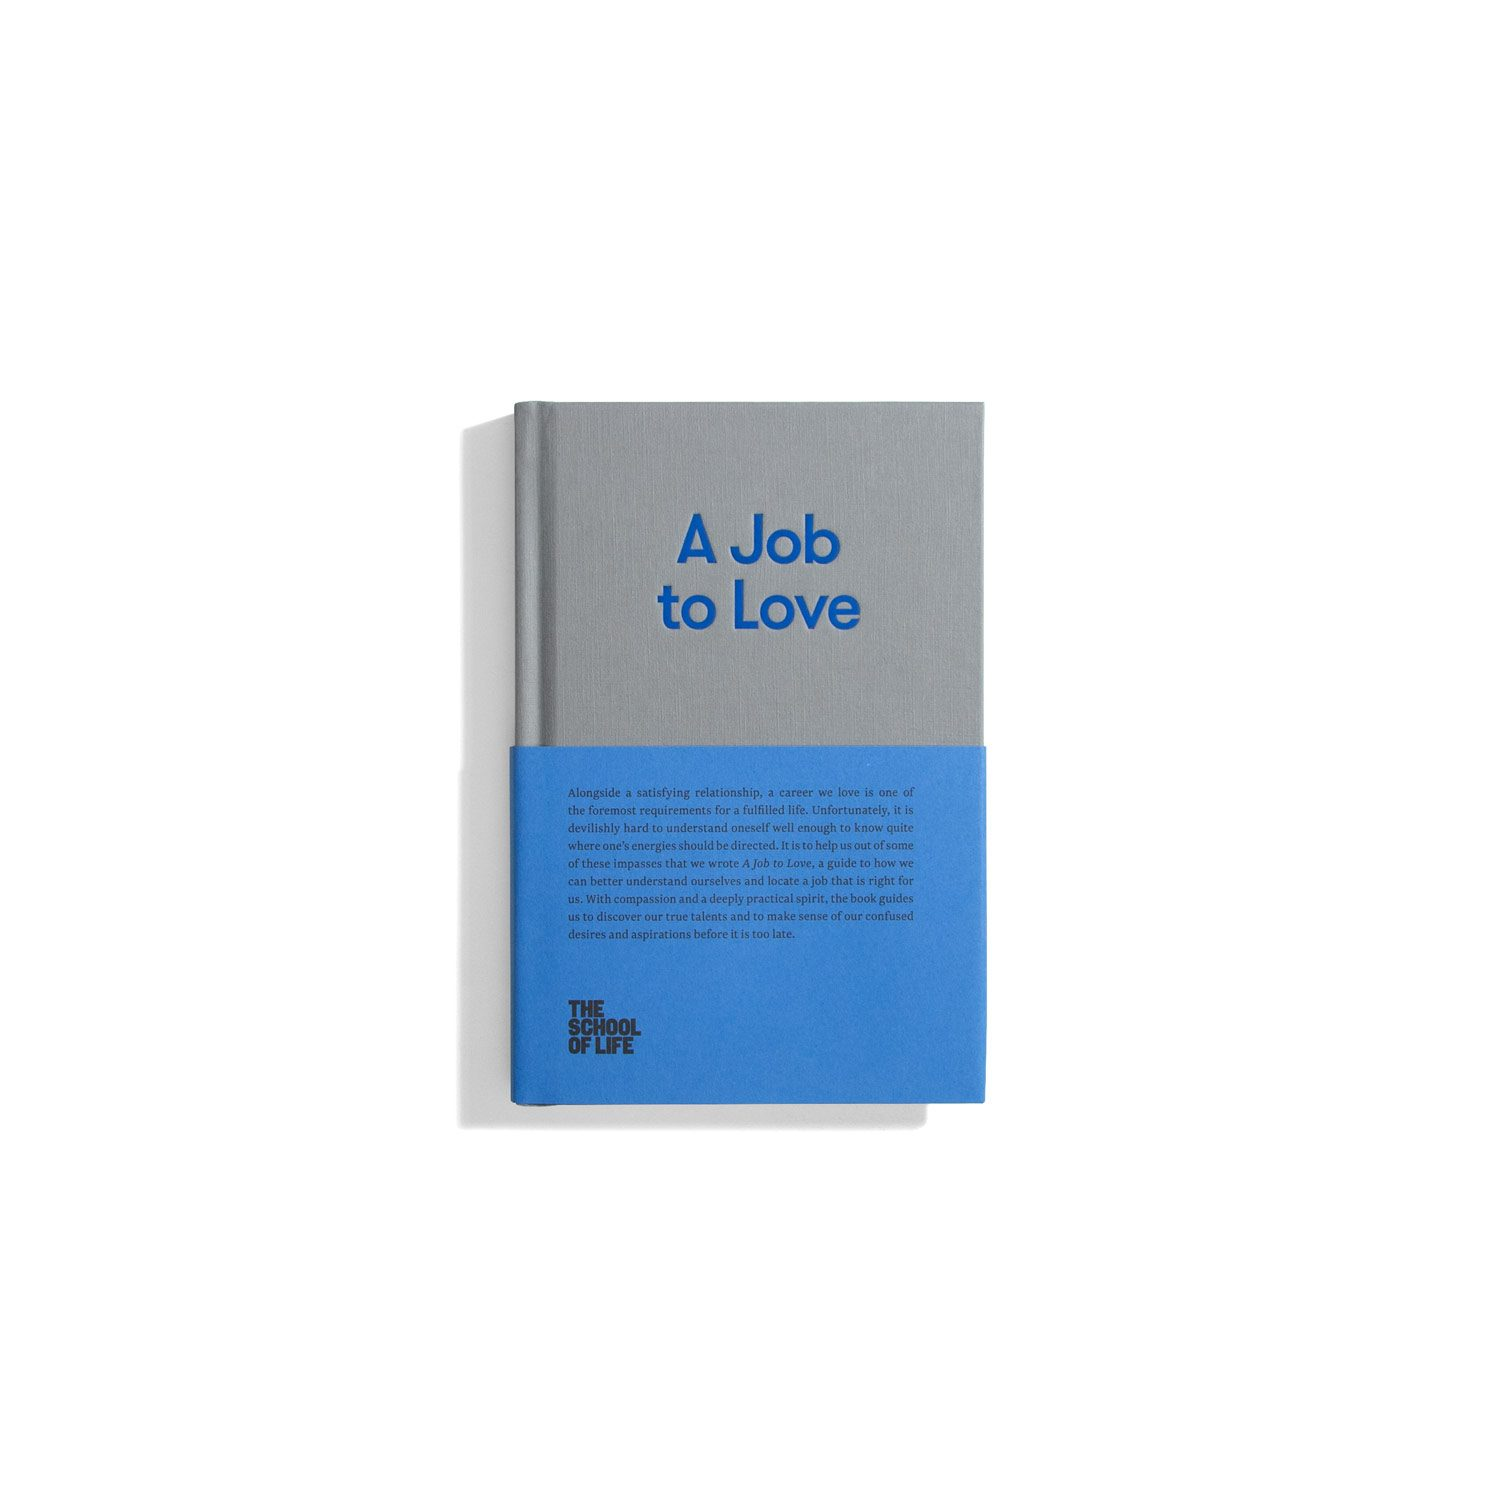 A Job to Love (The School of Life)